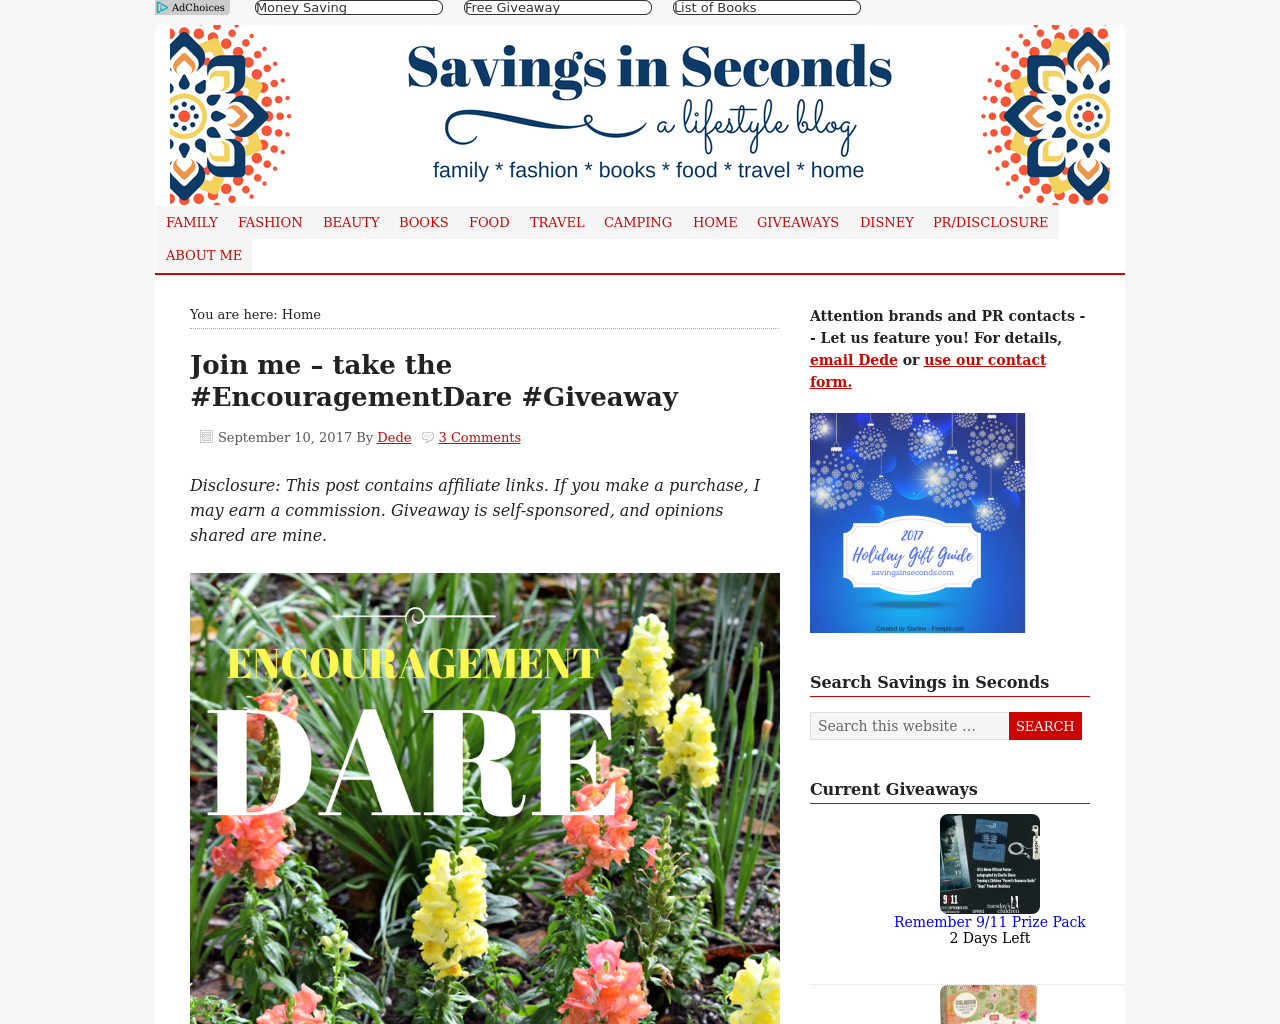 Savings-in-Seconds-Advertising-Reviews-Pricing